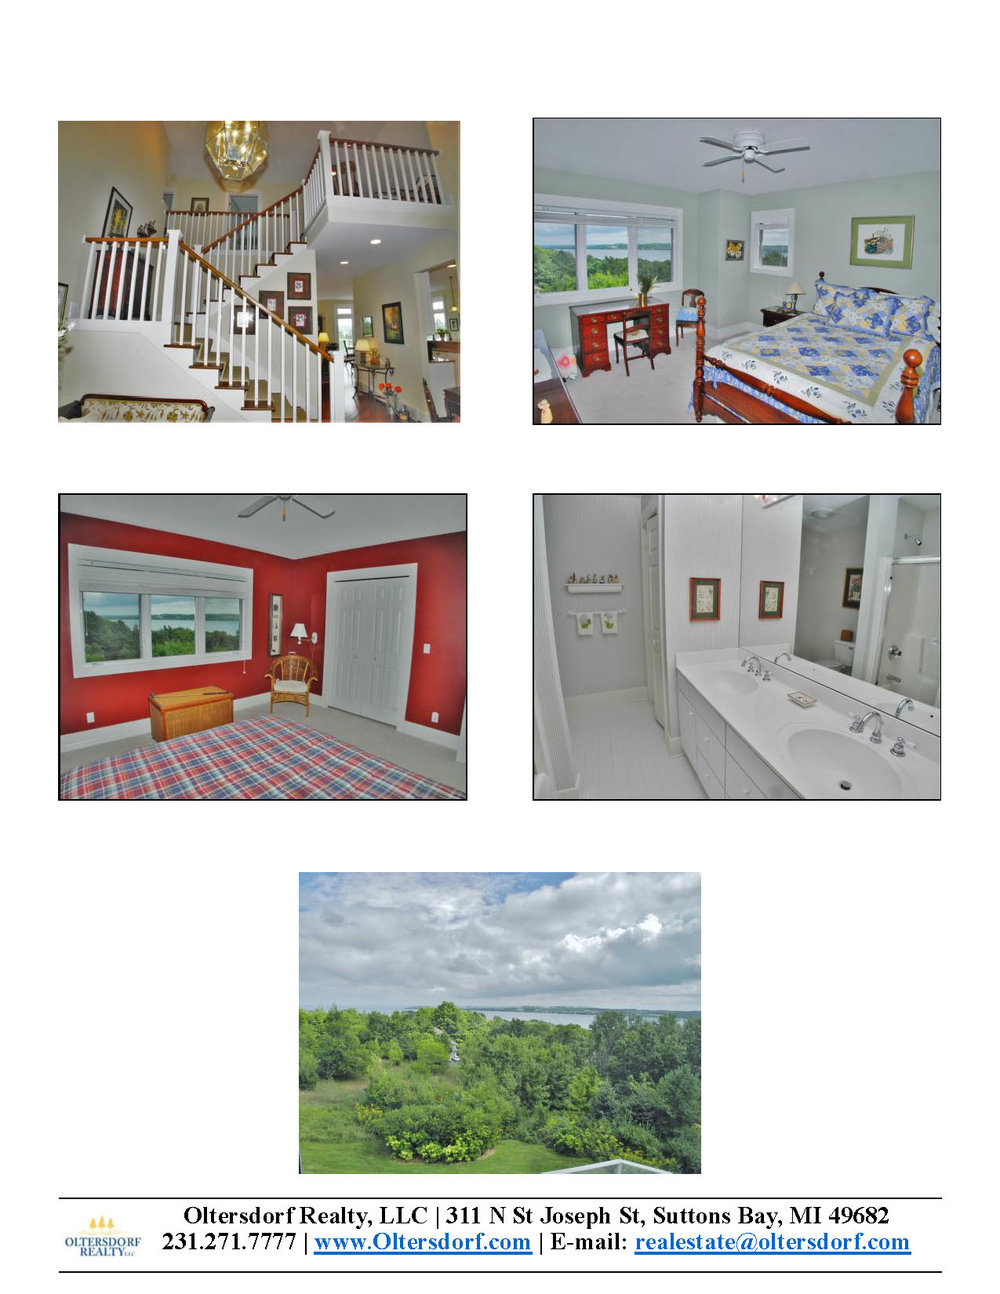 424 N School Hill Court, Suttons Bay real estate for sale by Oltersdorf Realty LLC - Information packet (8).jpg